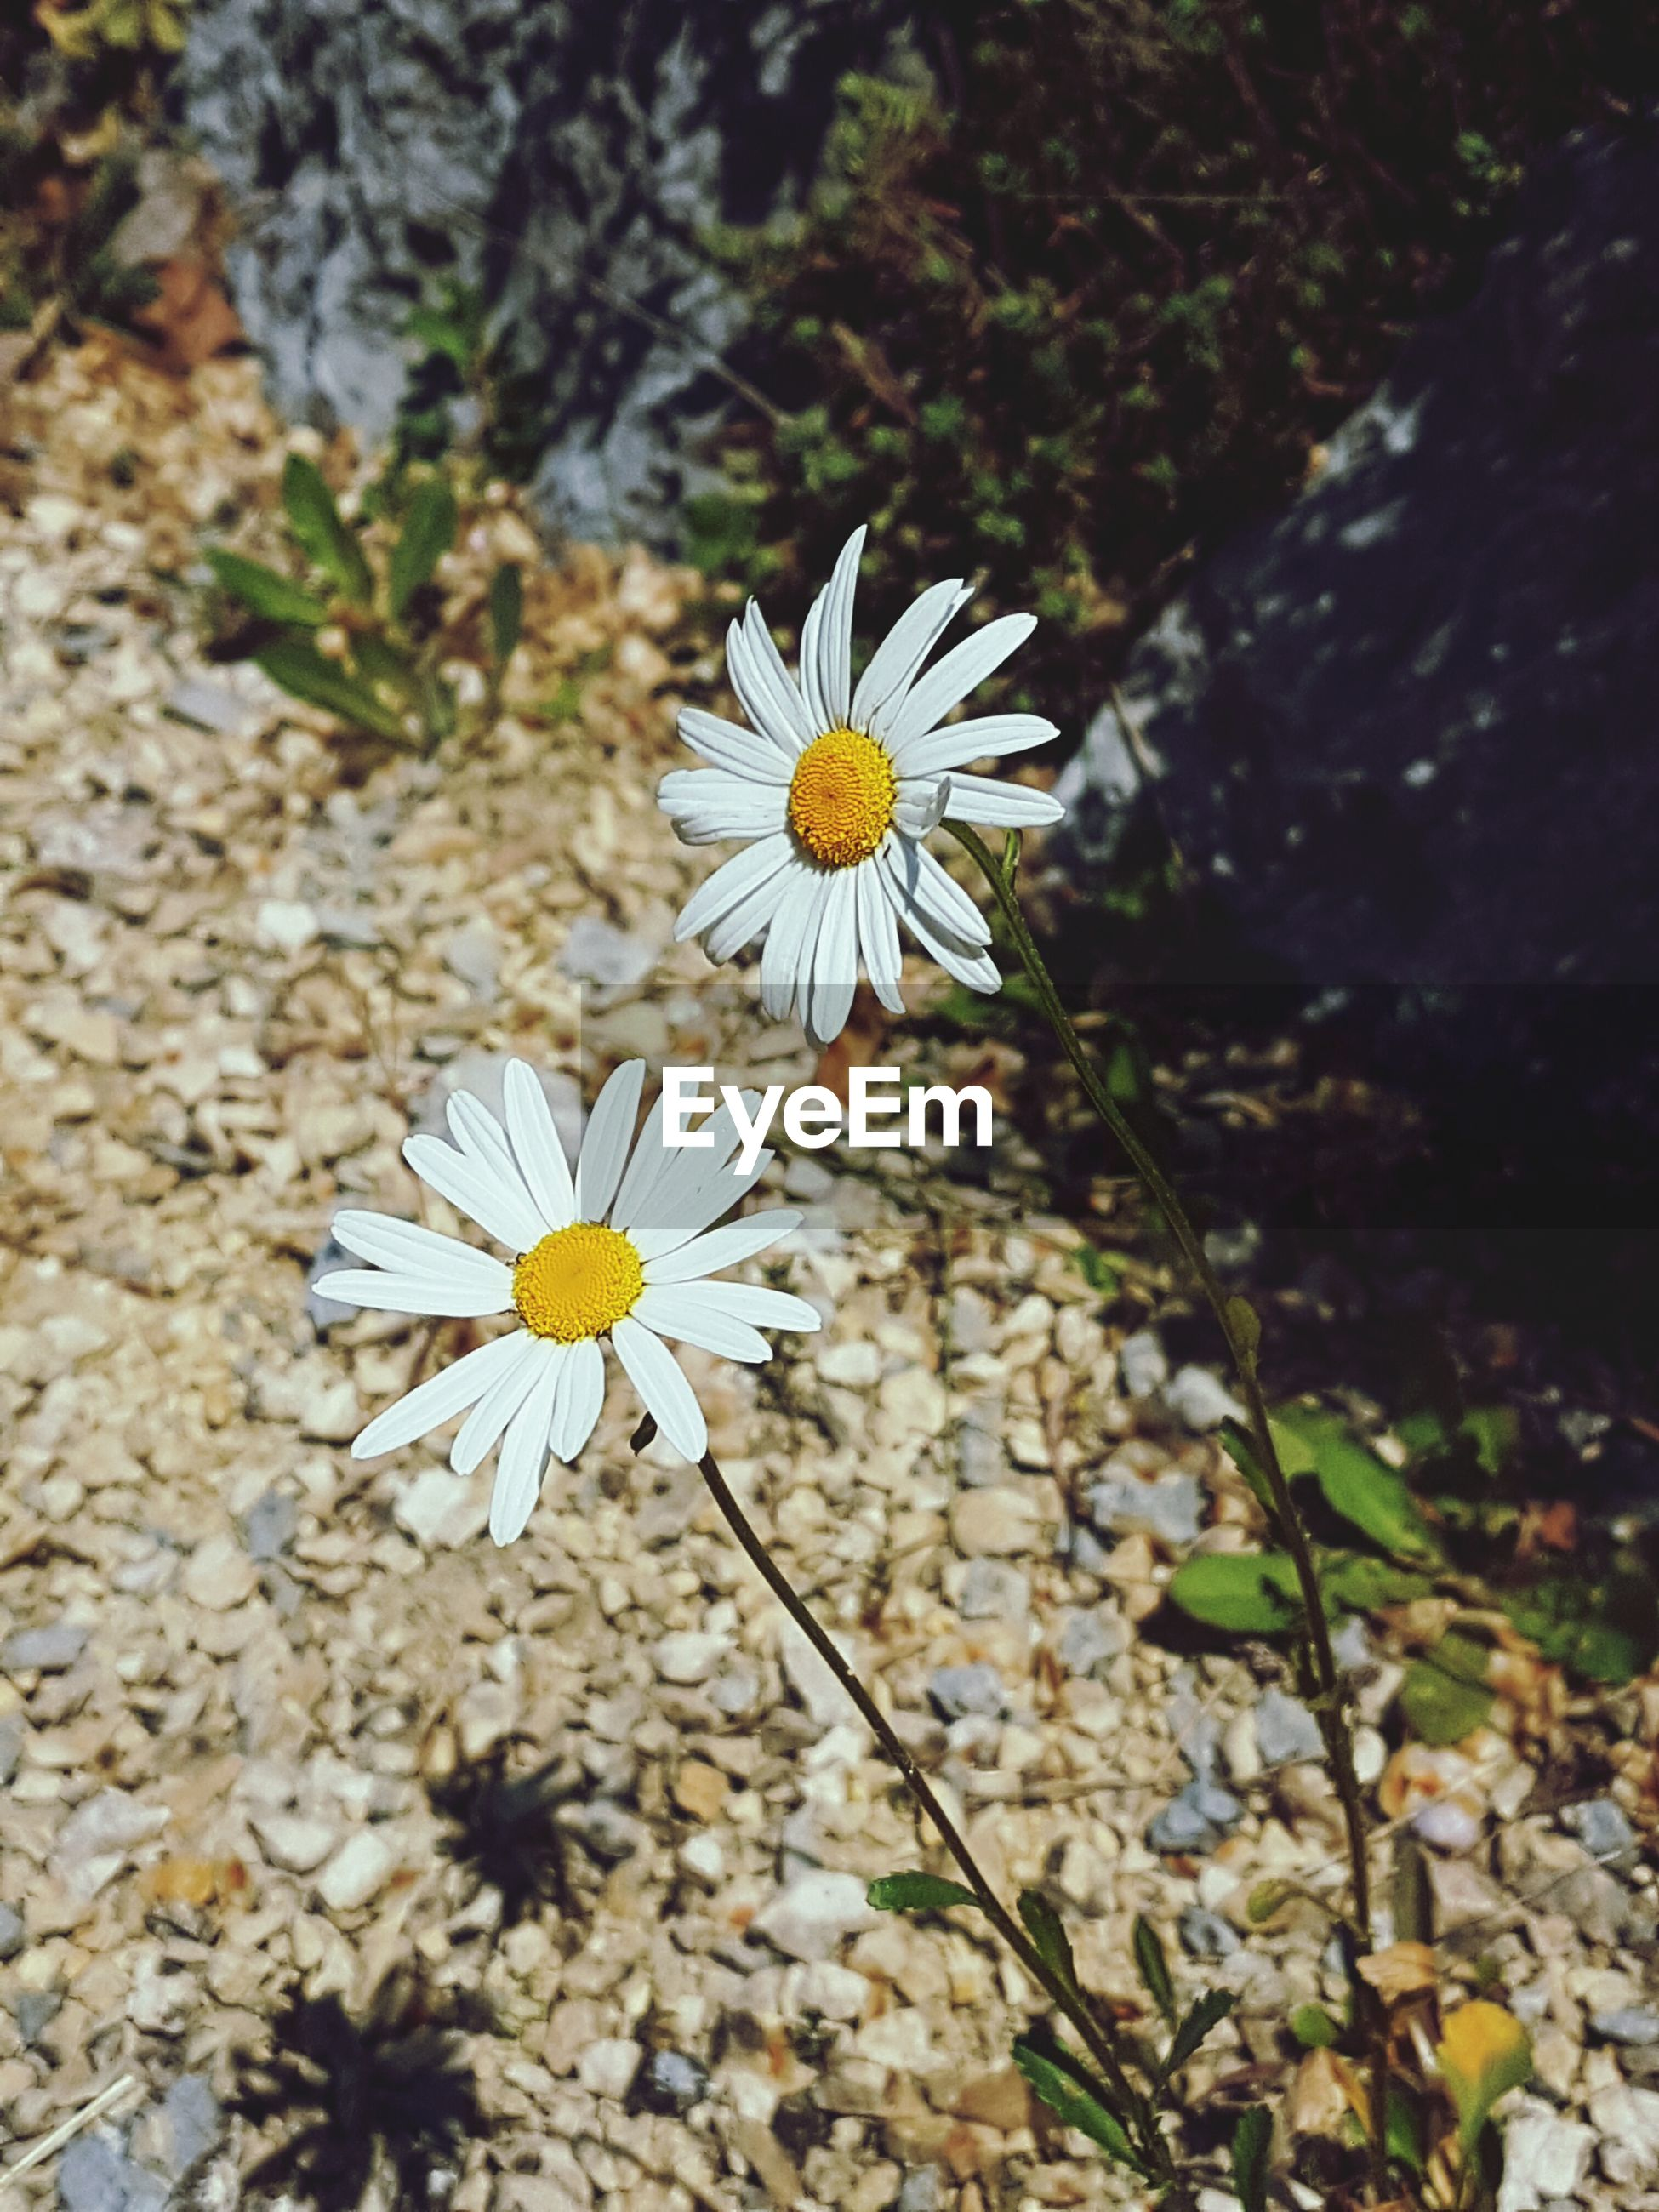 flower, fragility, beauty in nature, nature, flower head, freshness, growth, petal, pollen, daisy, blooming, outdoors, plant, no people, blossom, day, close-up